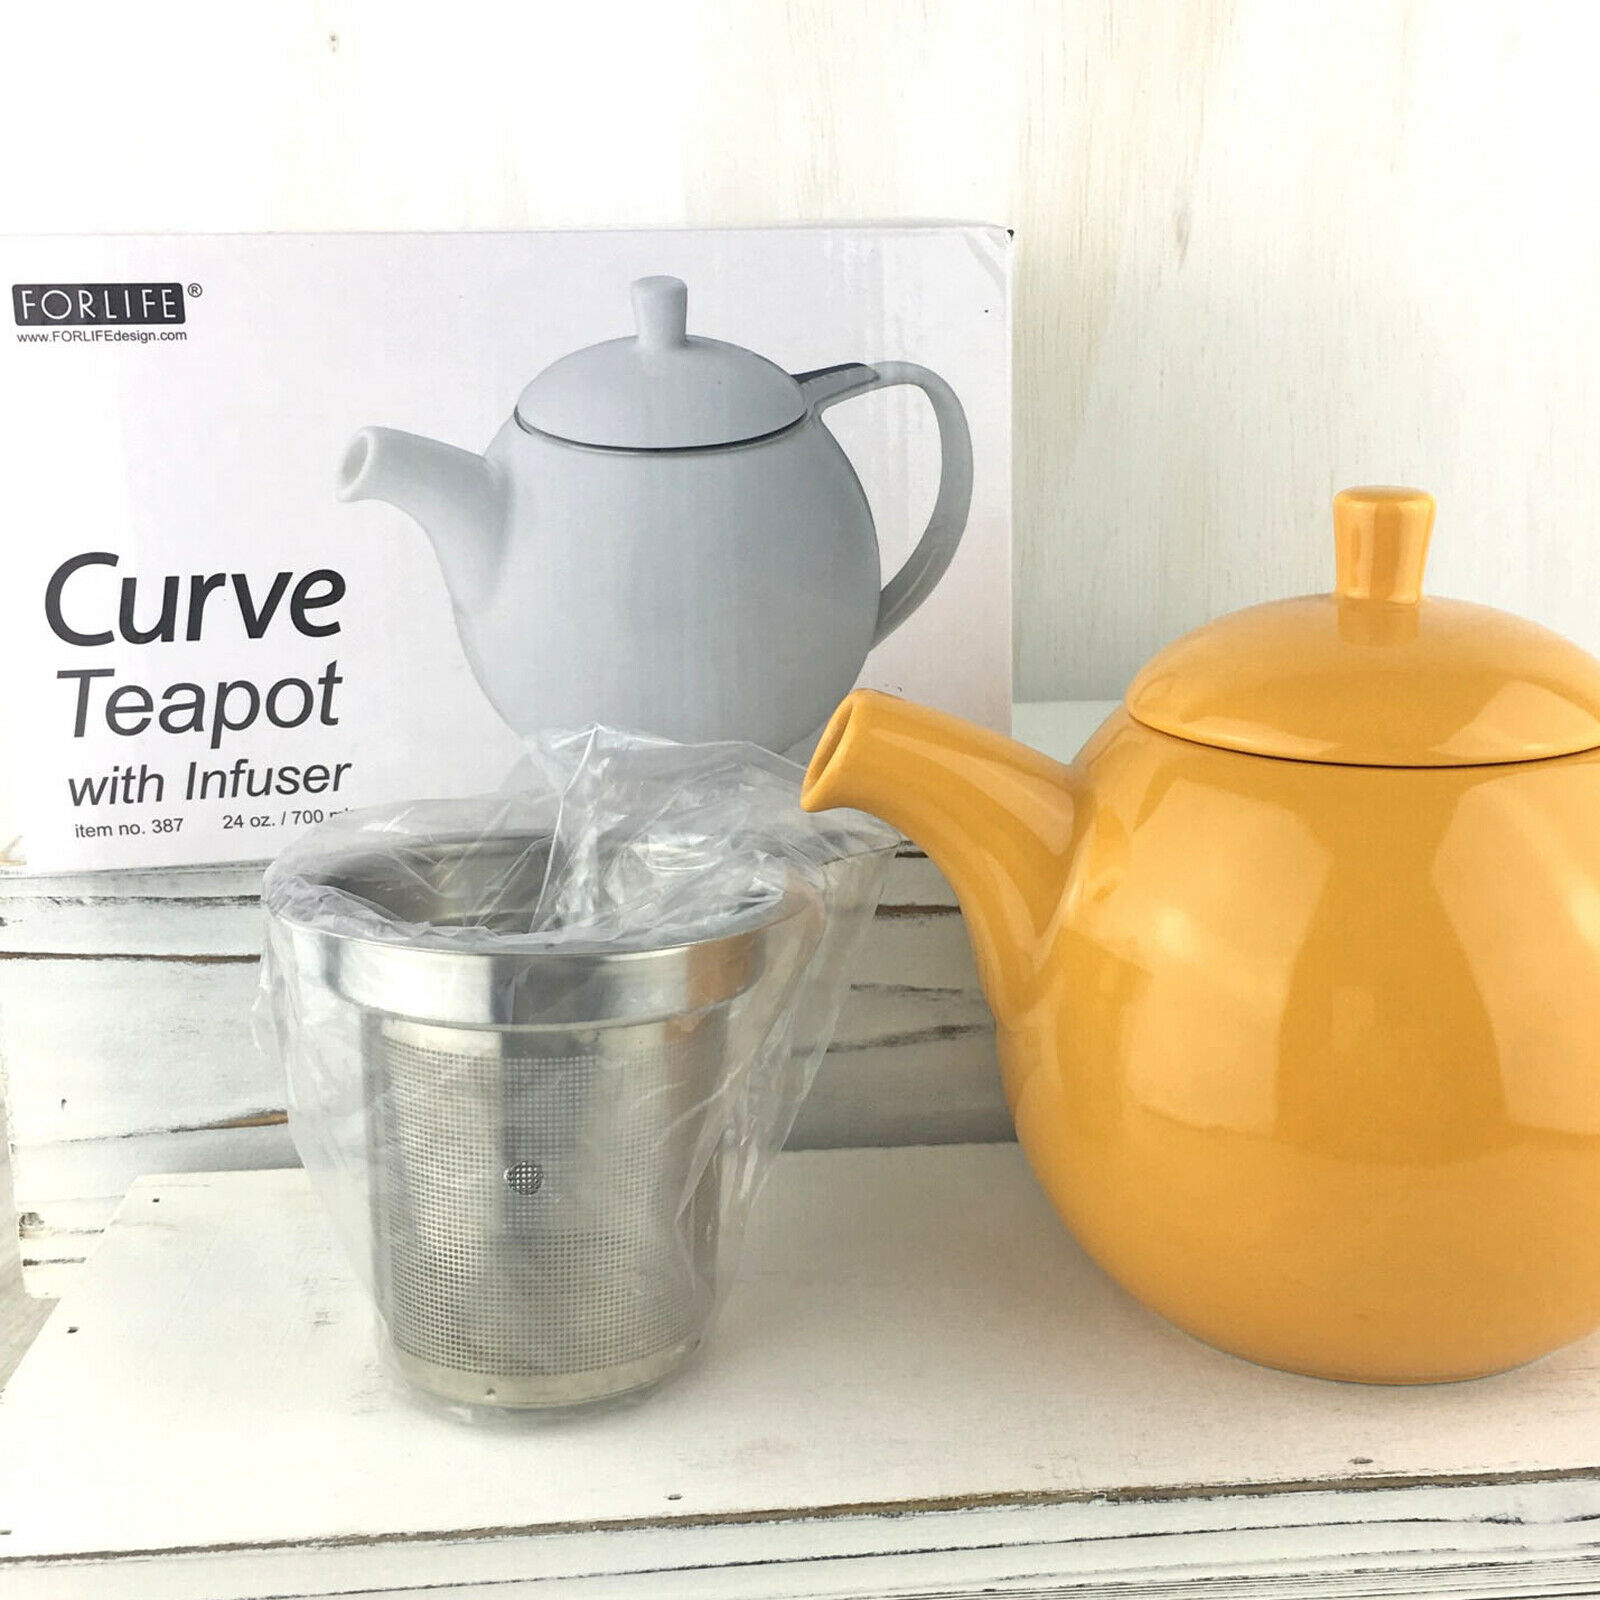 FORLIFE Curve Teapot with Infuser 24-Ounce Mandrin Gelb Teawear Serving